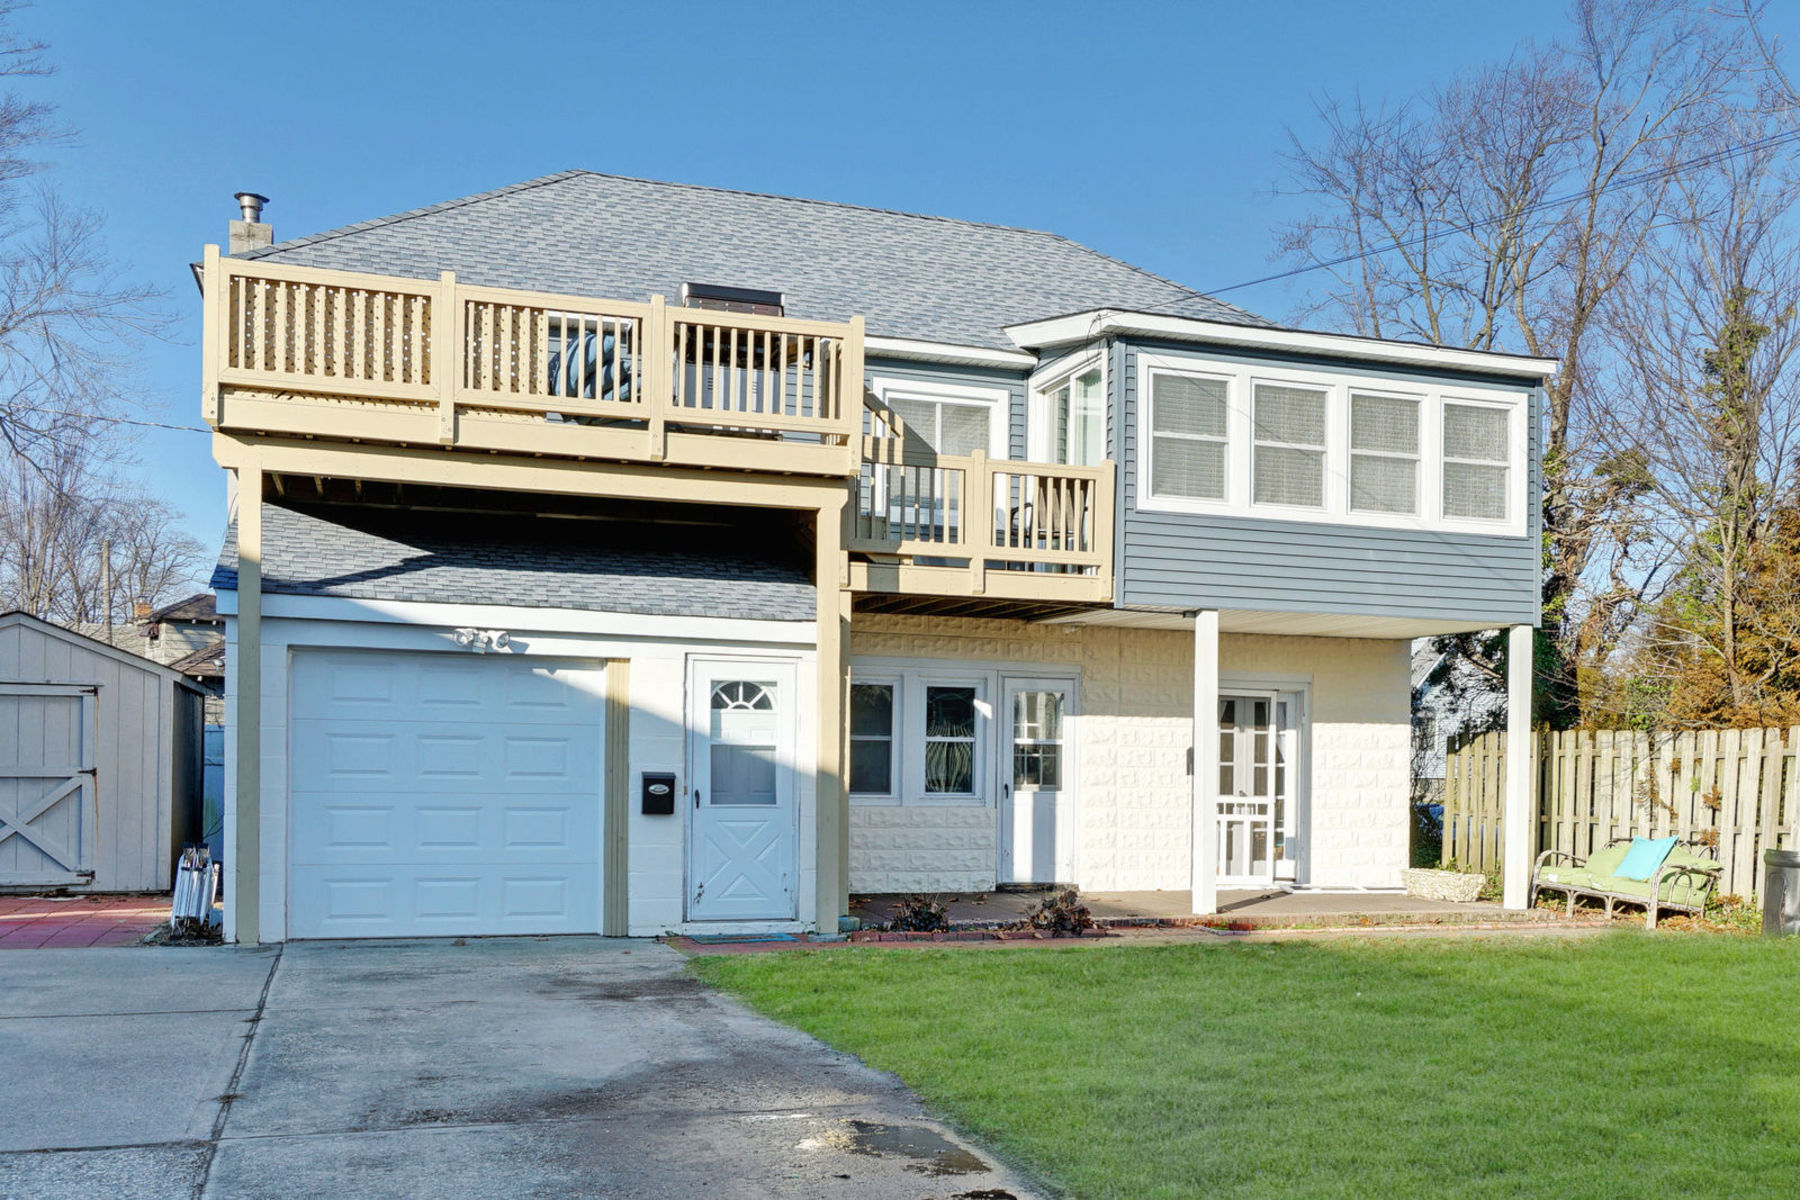 Multi-Family Home for Rent at 2nd Story Unit Near Beach and Downtown Belmar 2005 Main St #1, Lake Como, New Jersey 07719 United States